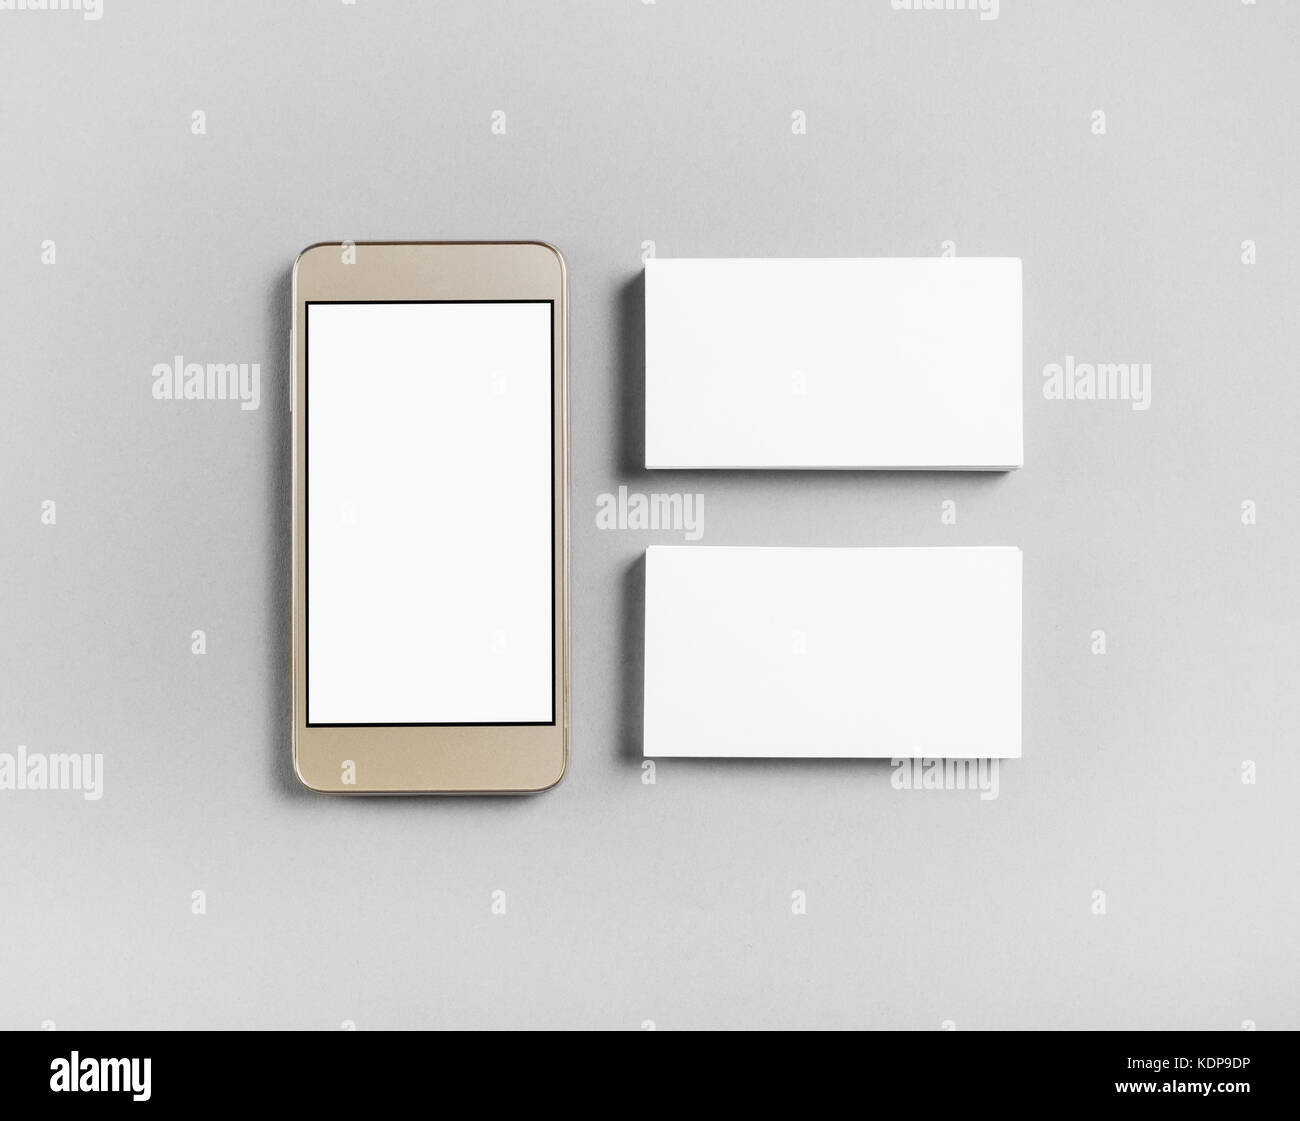 Blank business cards and smartphone on gray paper background blank business cards and smartphone on gray paper background objects for placing your design top view reheart Gallery